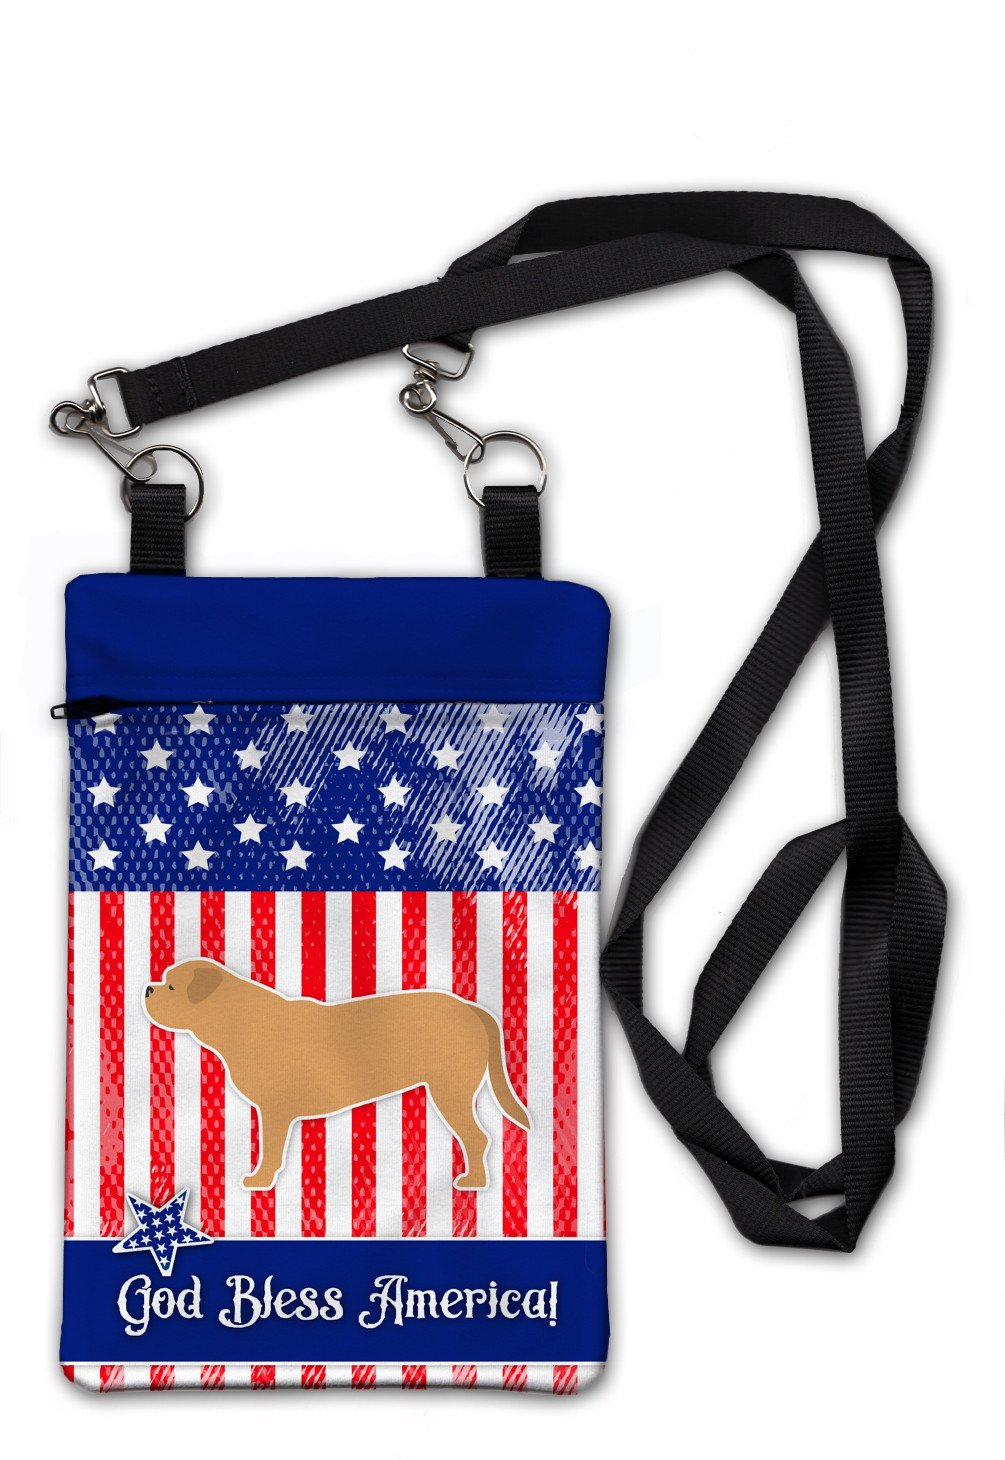 USA Patriotic Dogue de Bordeaux Crossbody Bag Purse BB3370OBDY by Caroline's Treasures